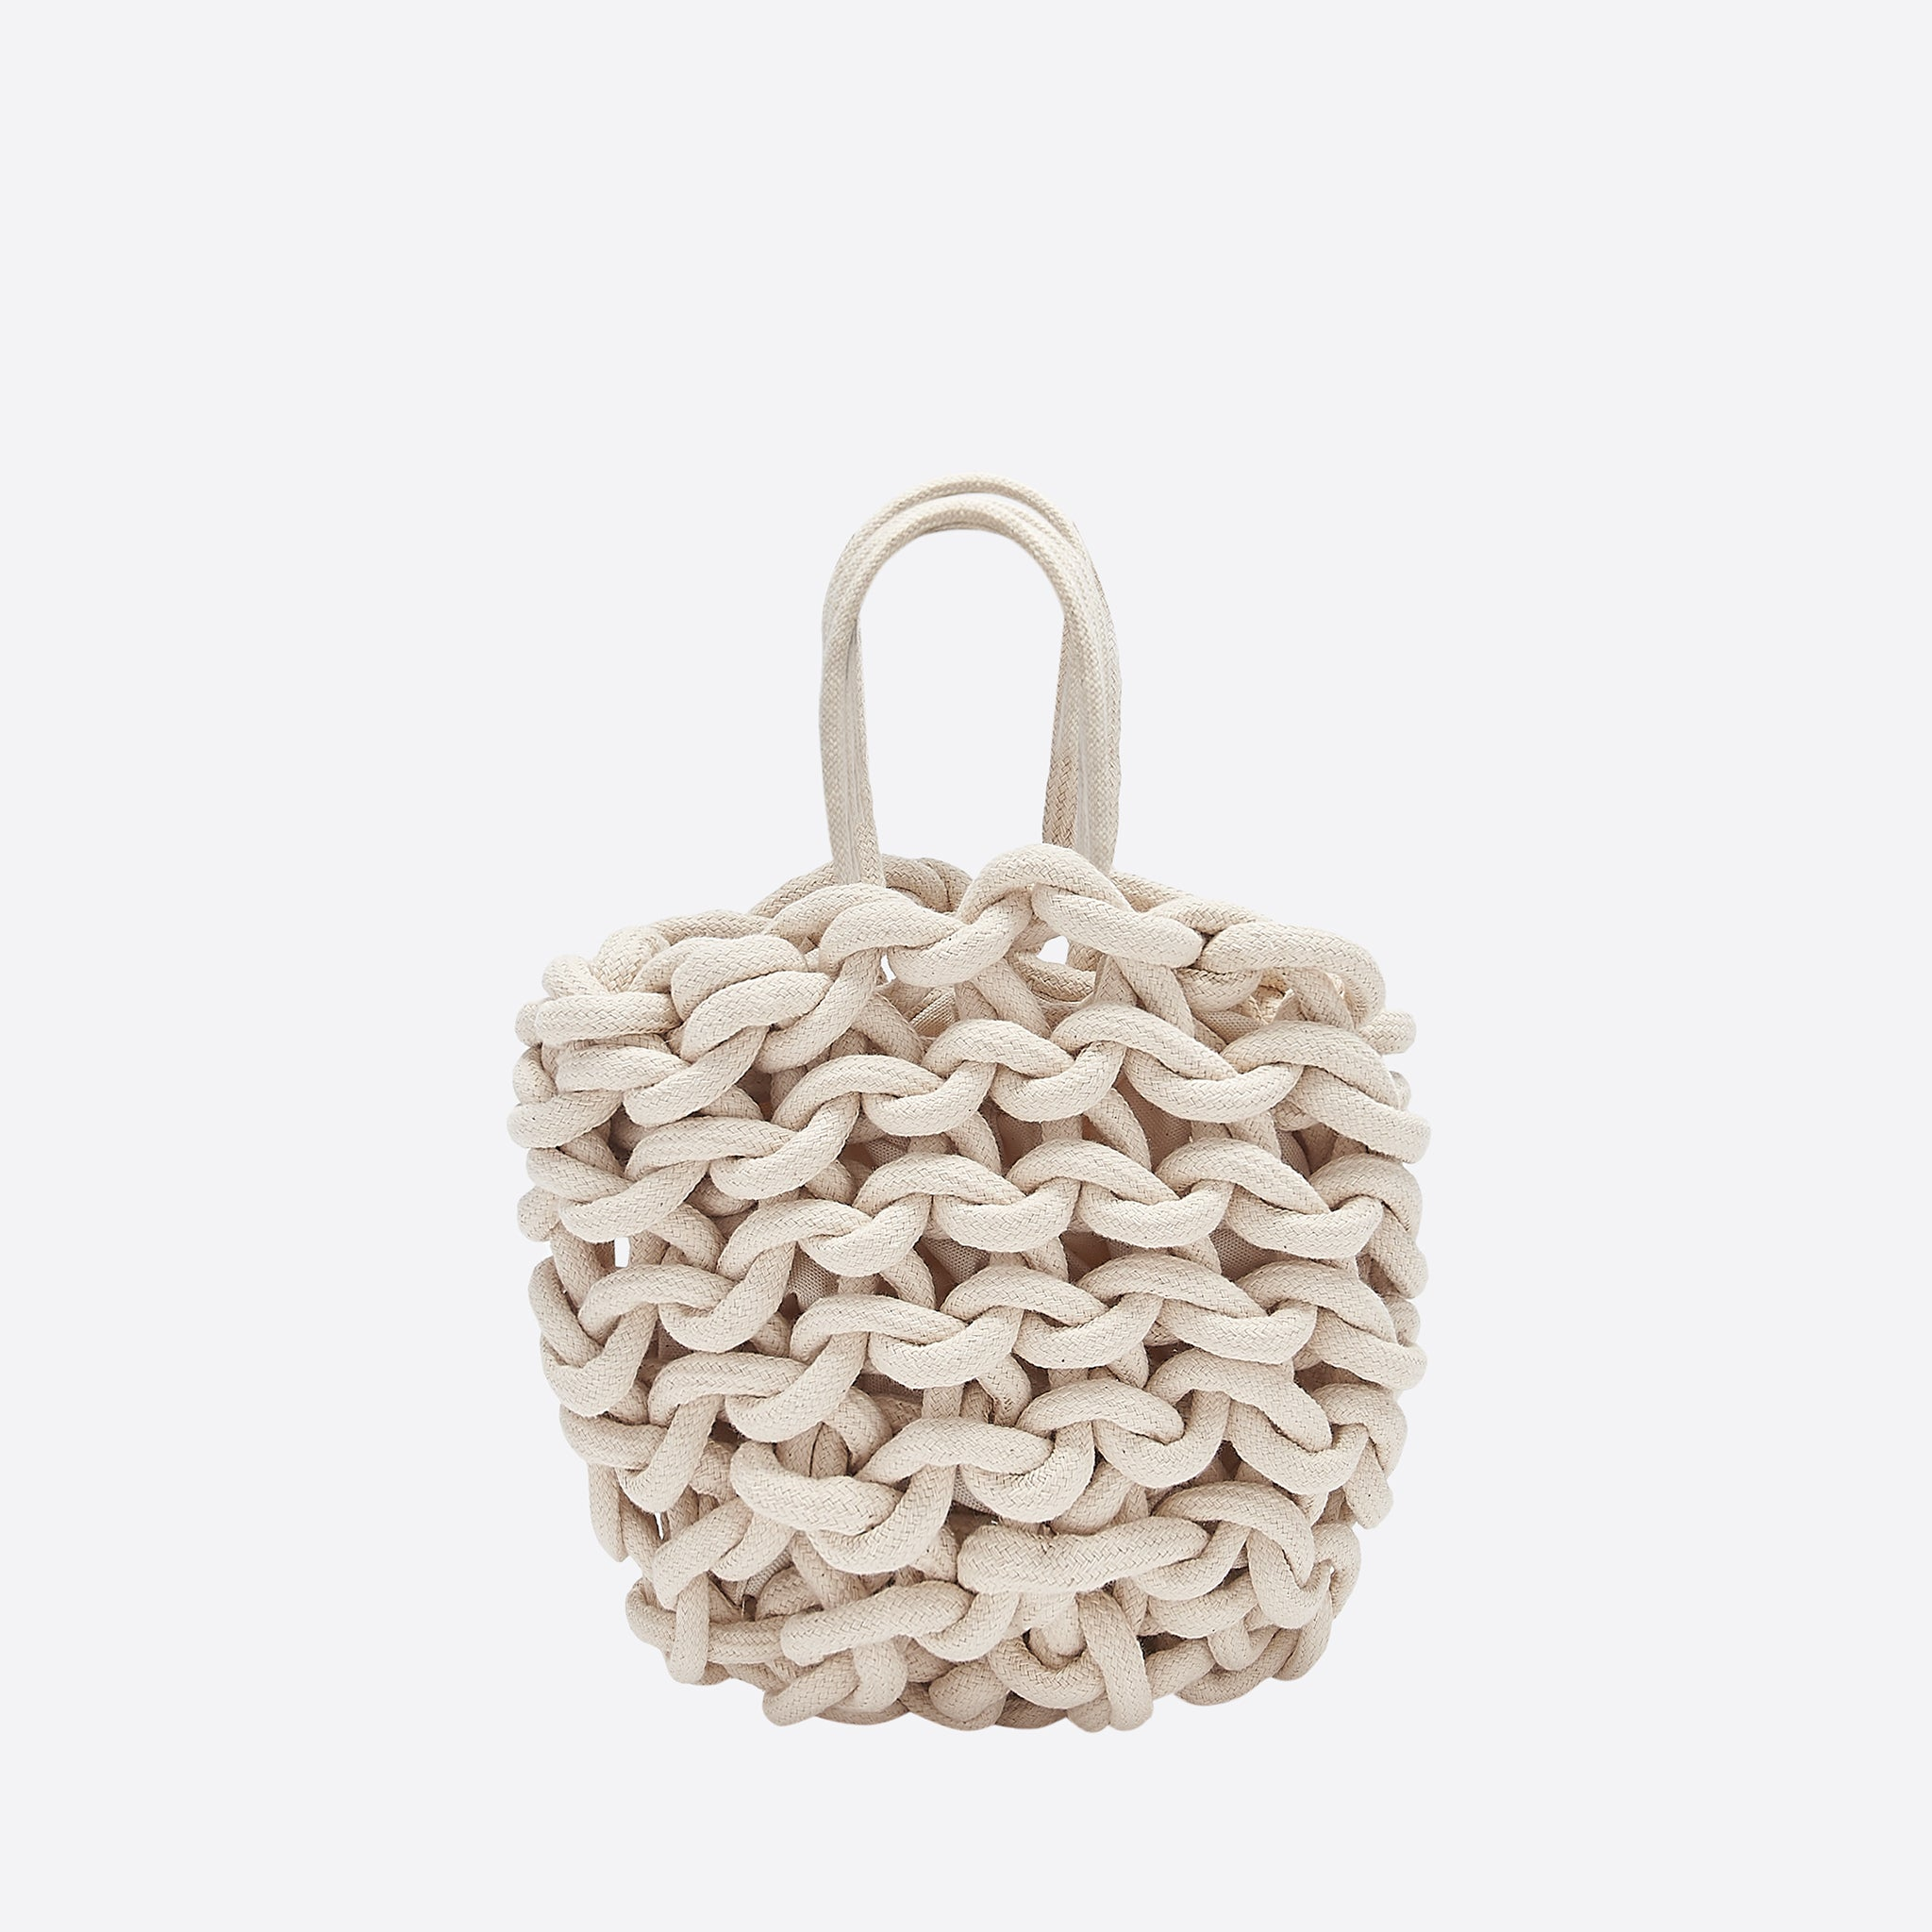 Alienina Julia Bag in Off White